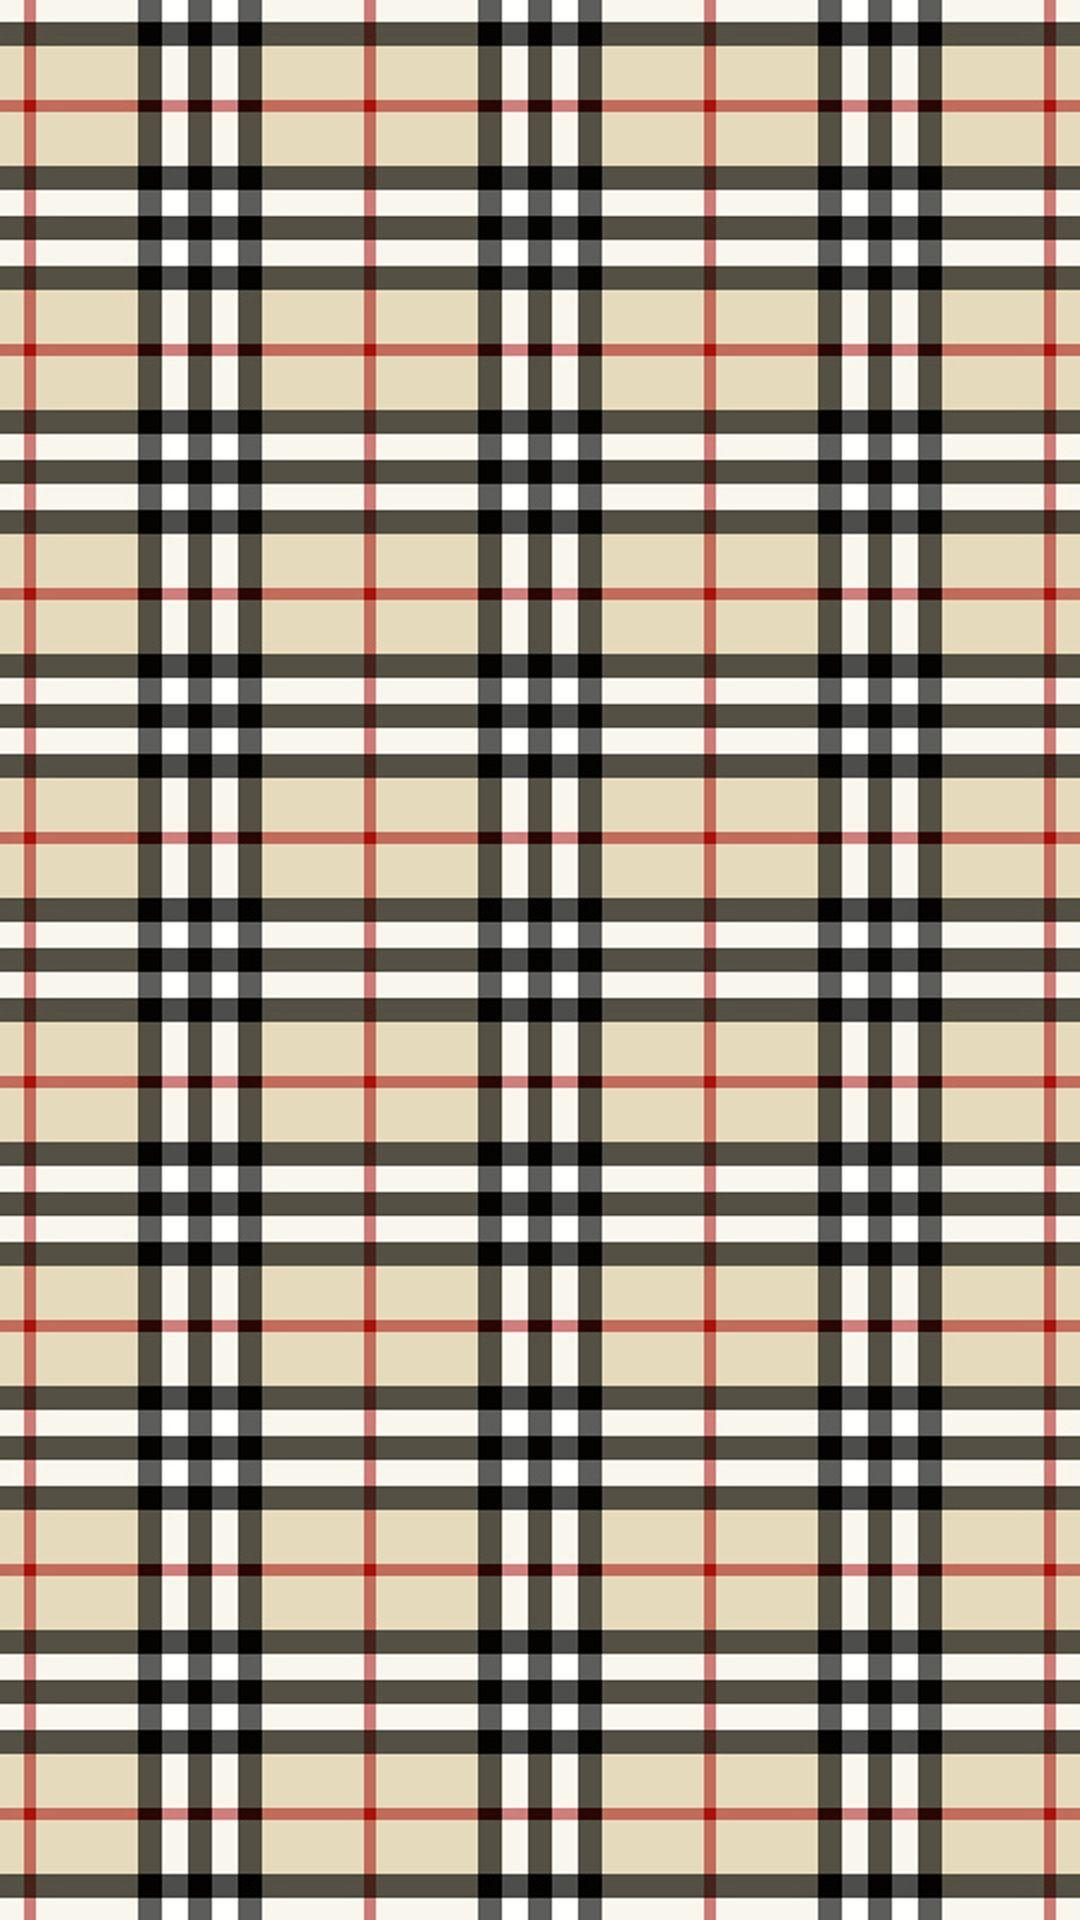 Burberry iPhone Wallpapers - Top Free